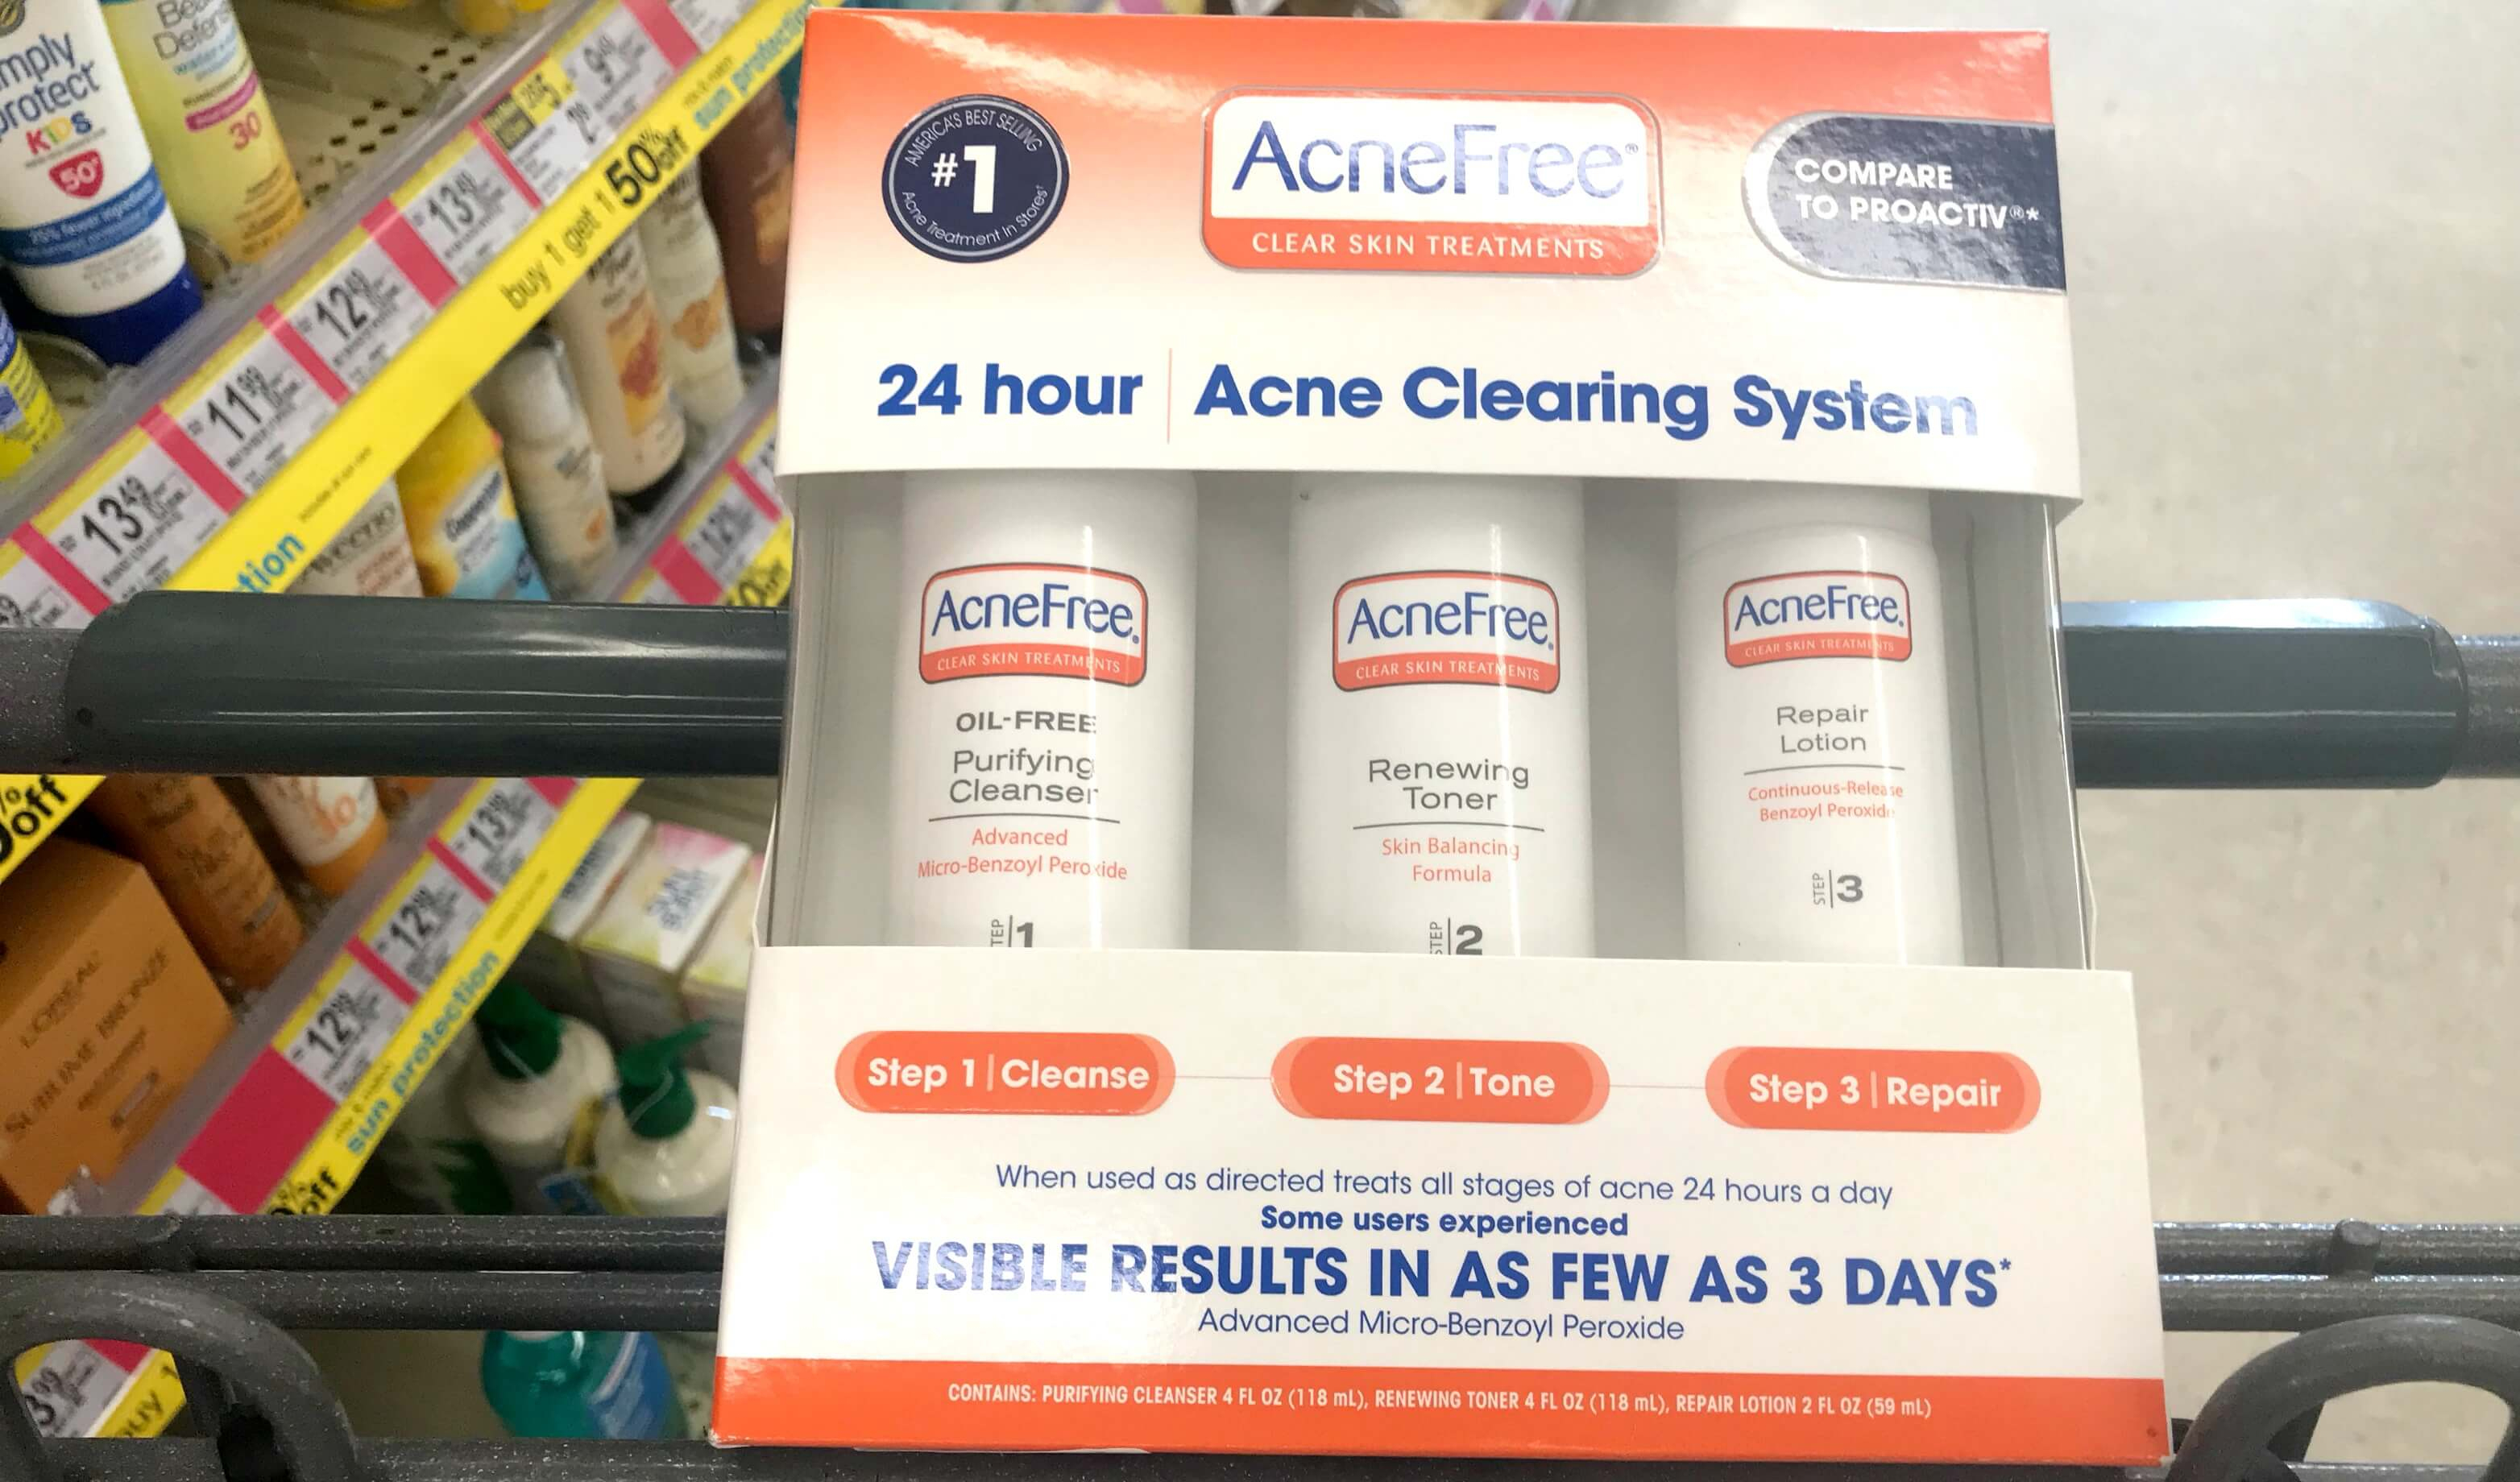 $10 In New Acnefree Skin Care Coupons + Great Deals At Target - Acne Free Coupons Printable